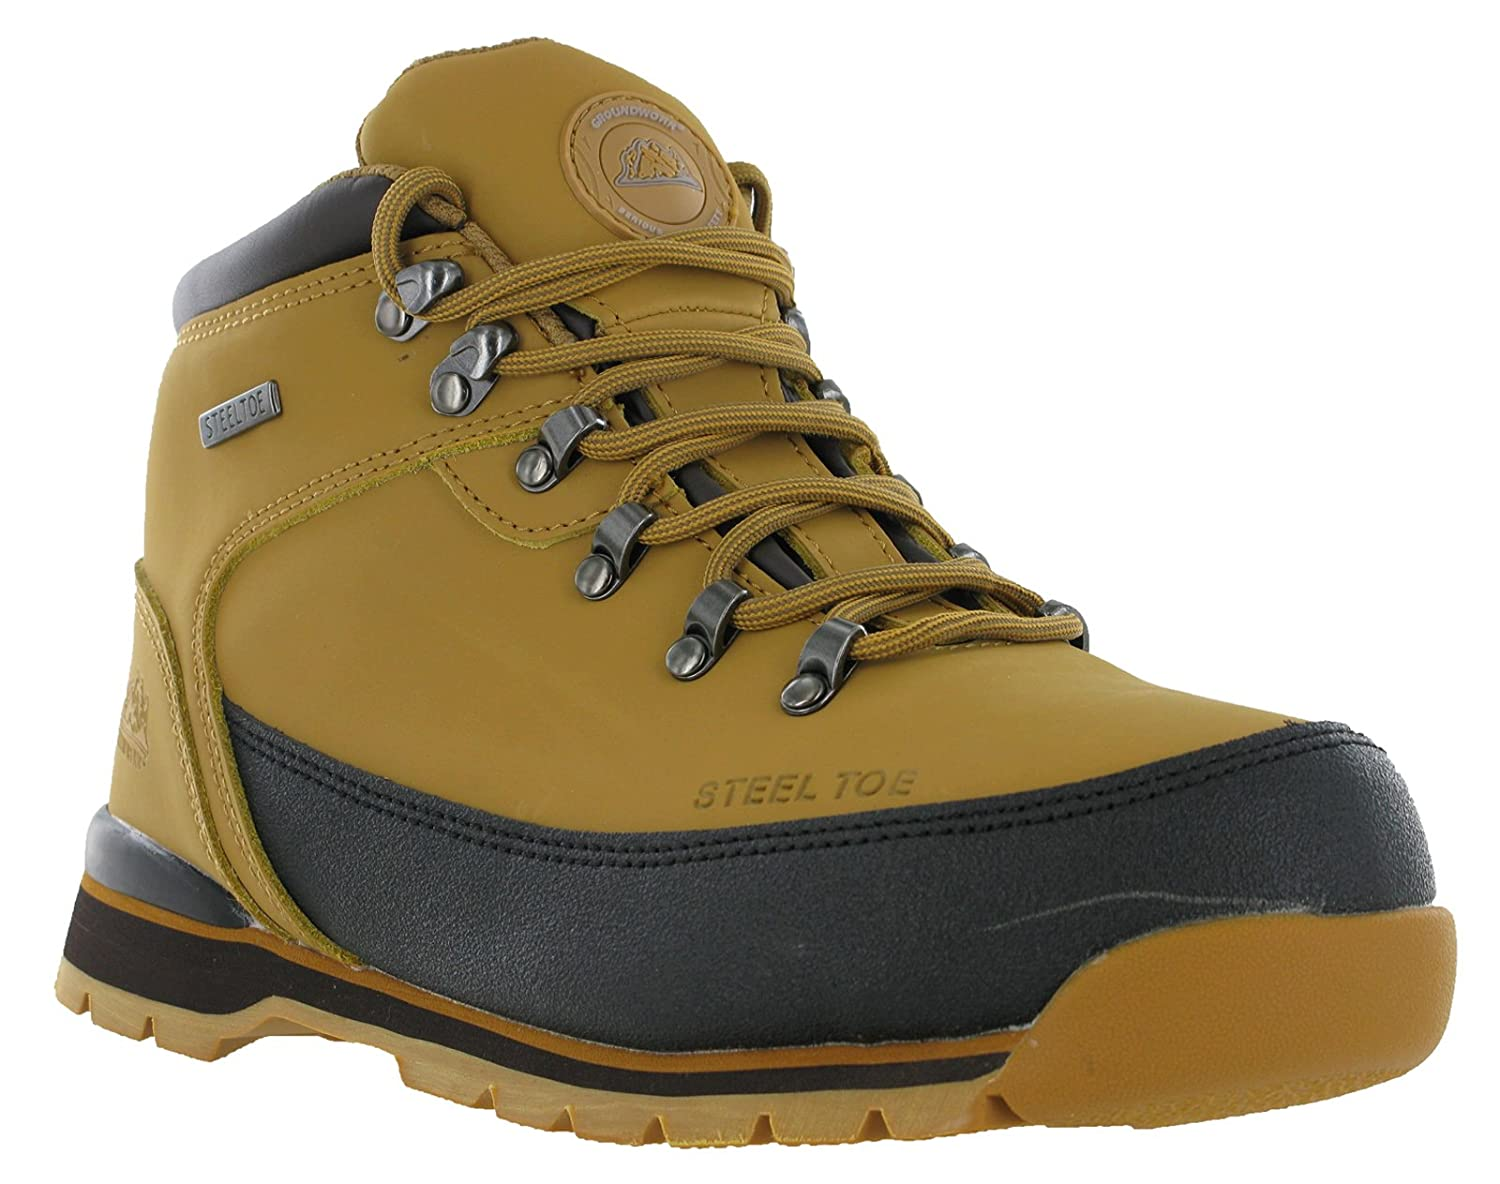 Unisex Adults Safety Boots Groundwork Gr387